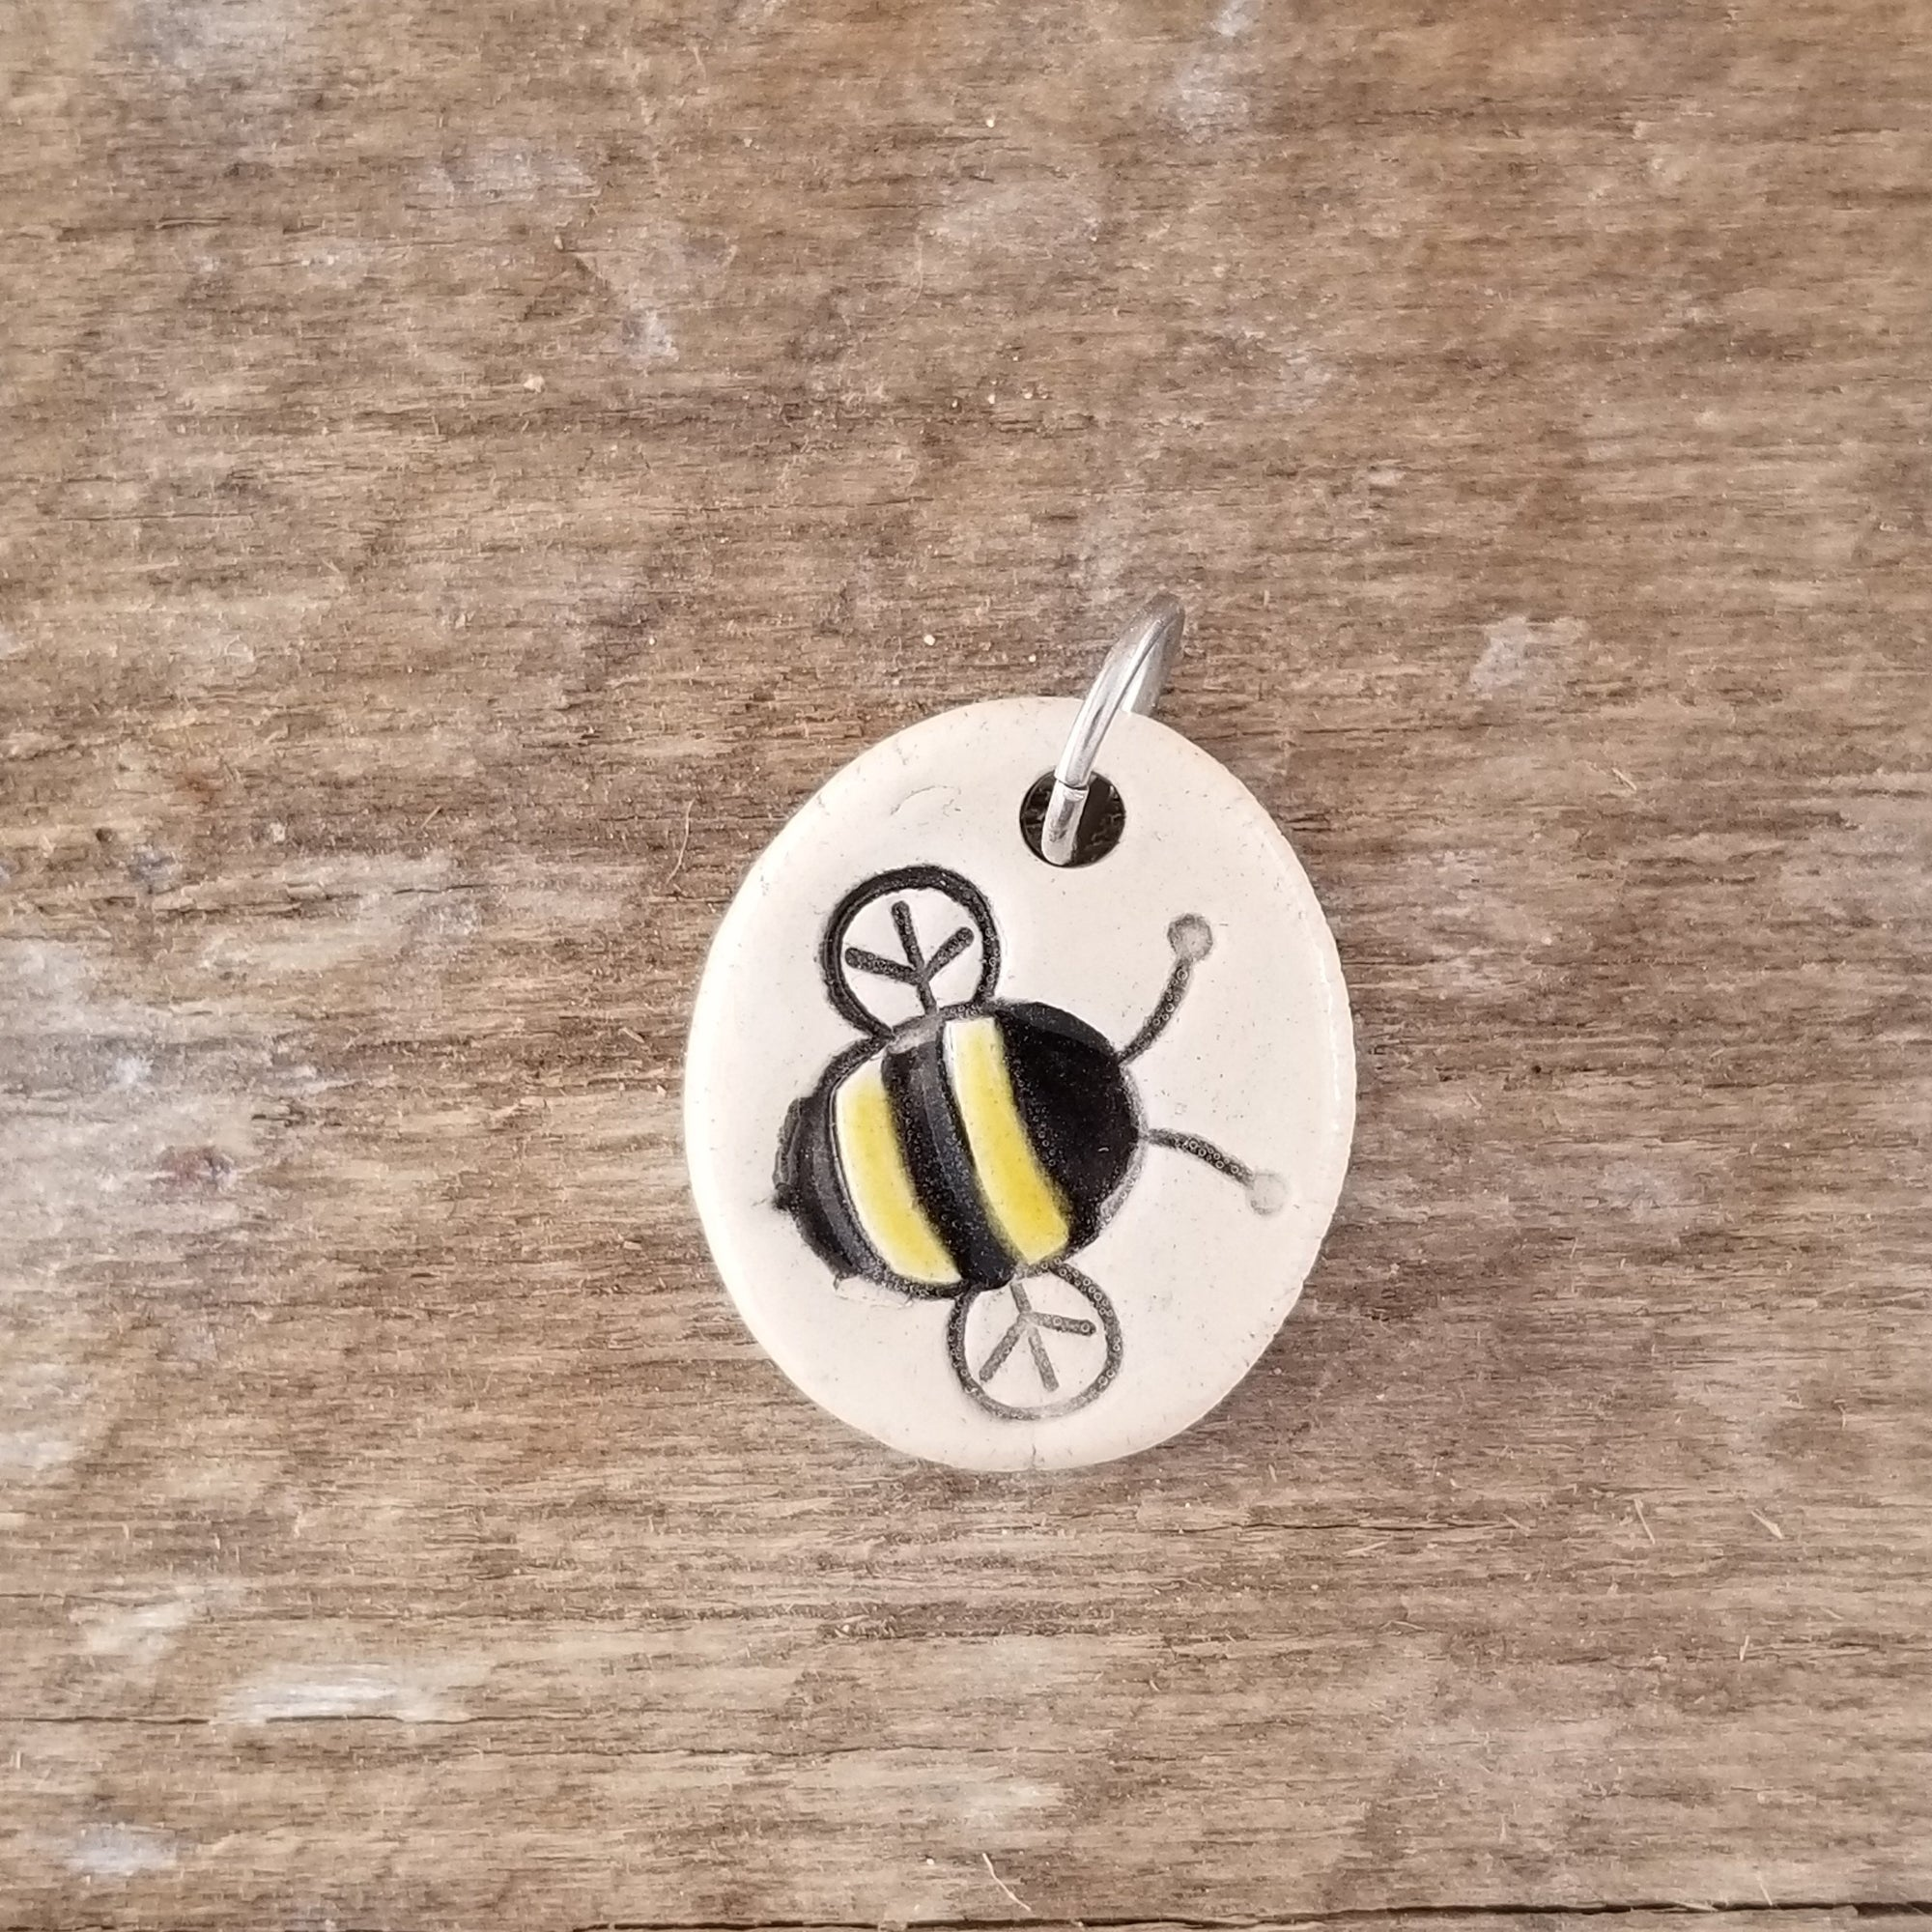 Bumble Bee Mini Pendant - Cheryl Stevens Studio